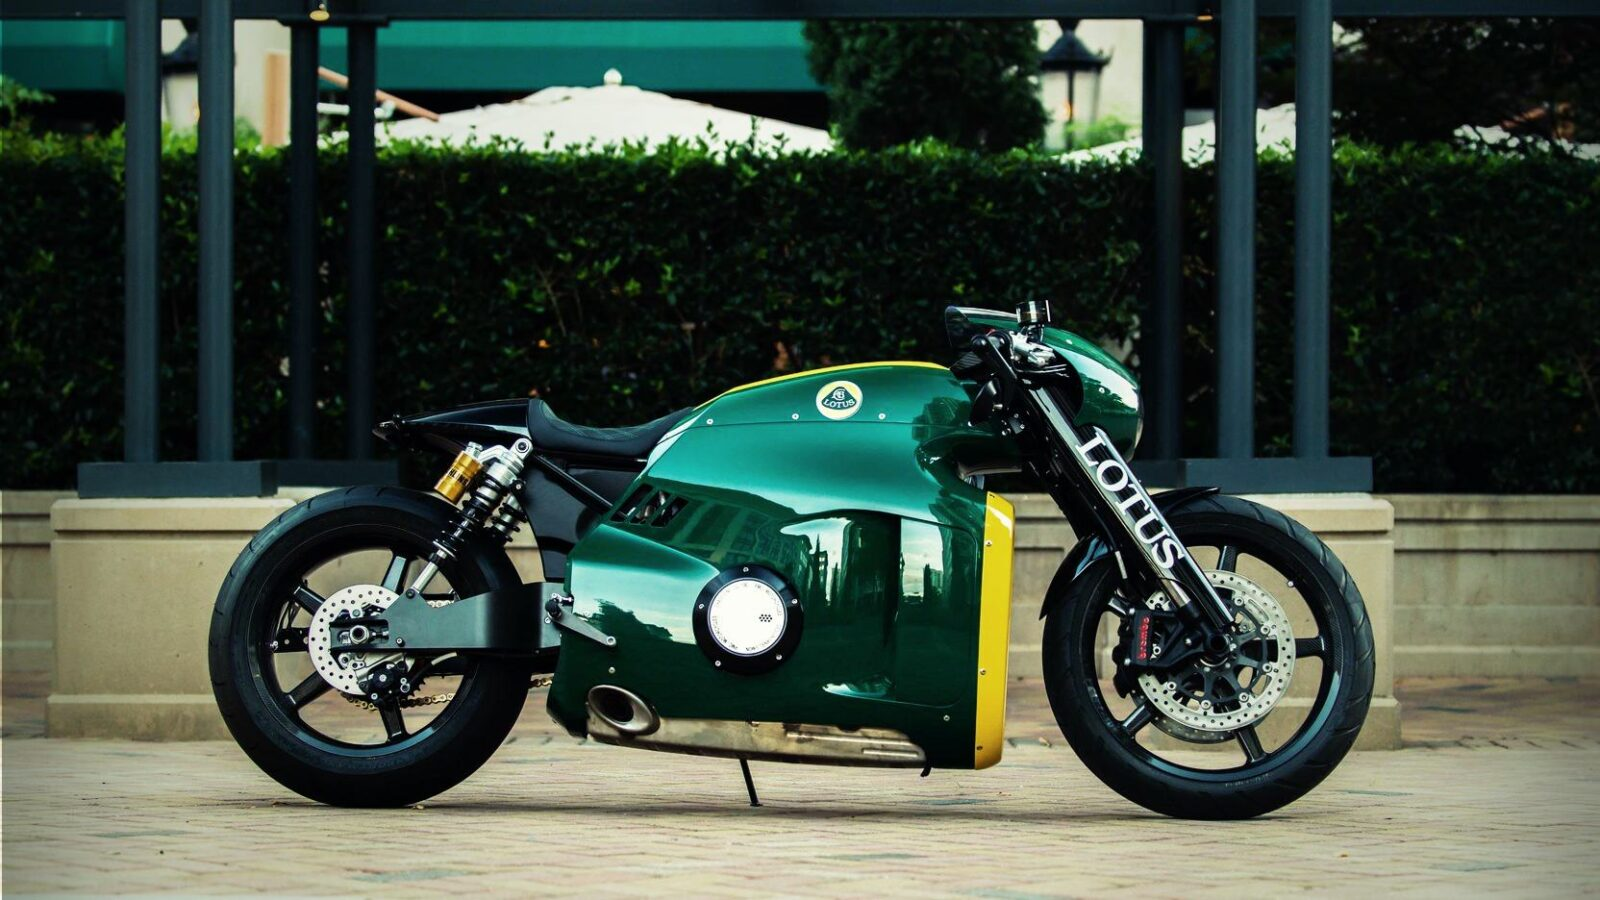 Lotus C 01 Motorcycle 1600x900 - Lotus C-01 Motorcycle